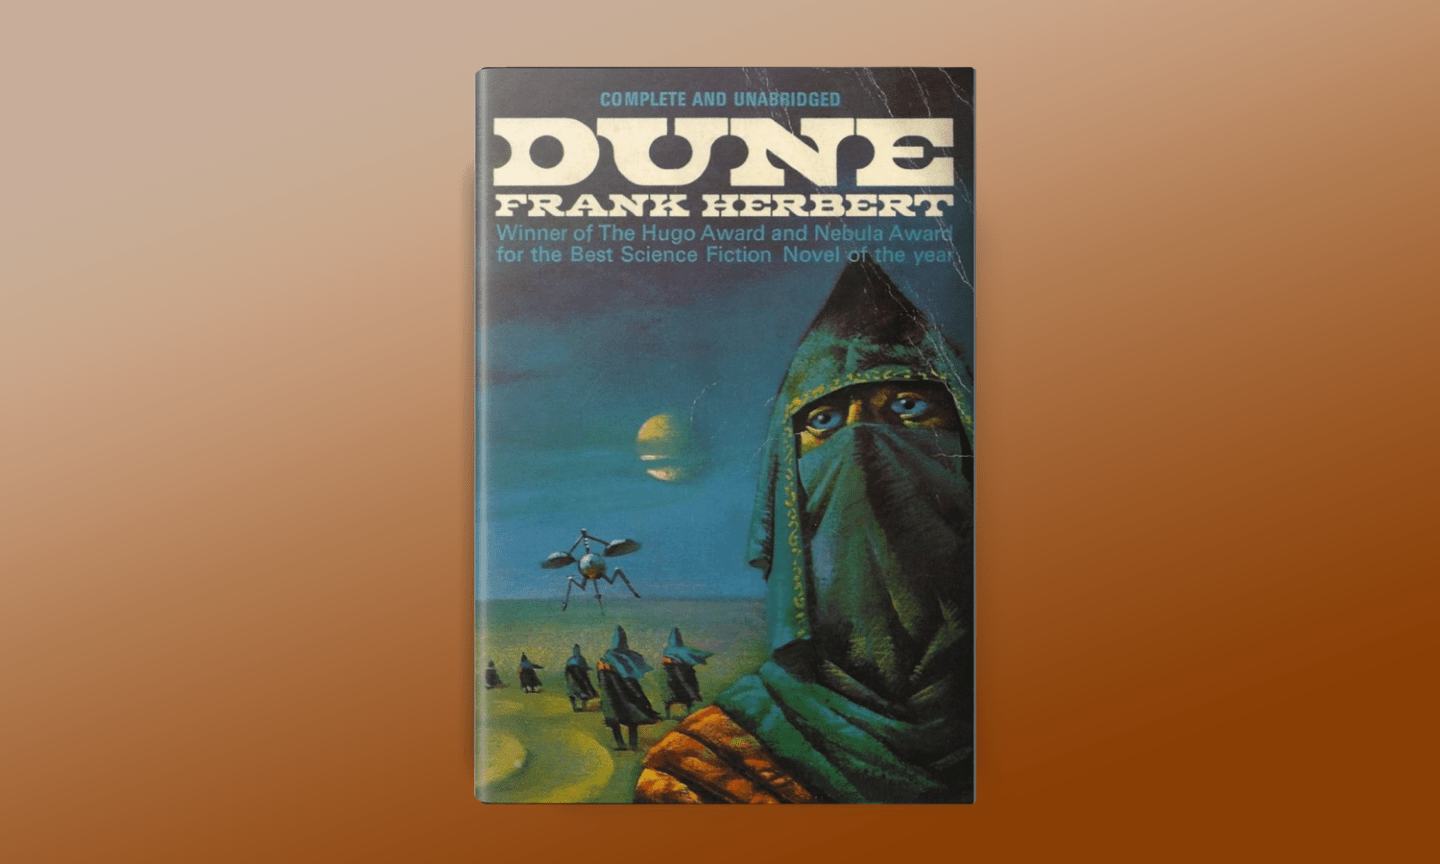 A fascinating in-depth analysis of the Muslim-ness of Dune